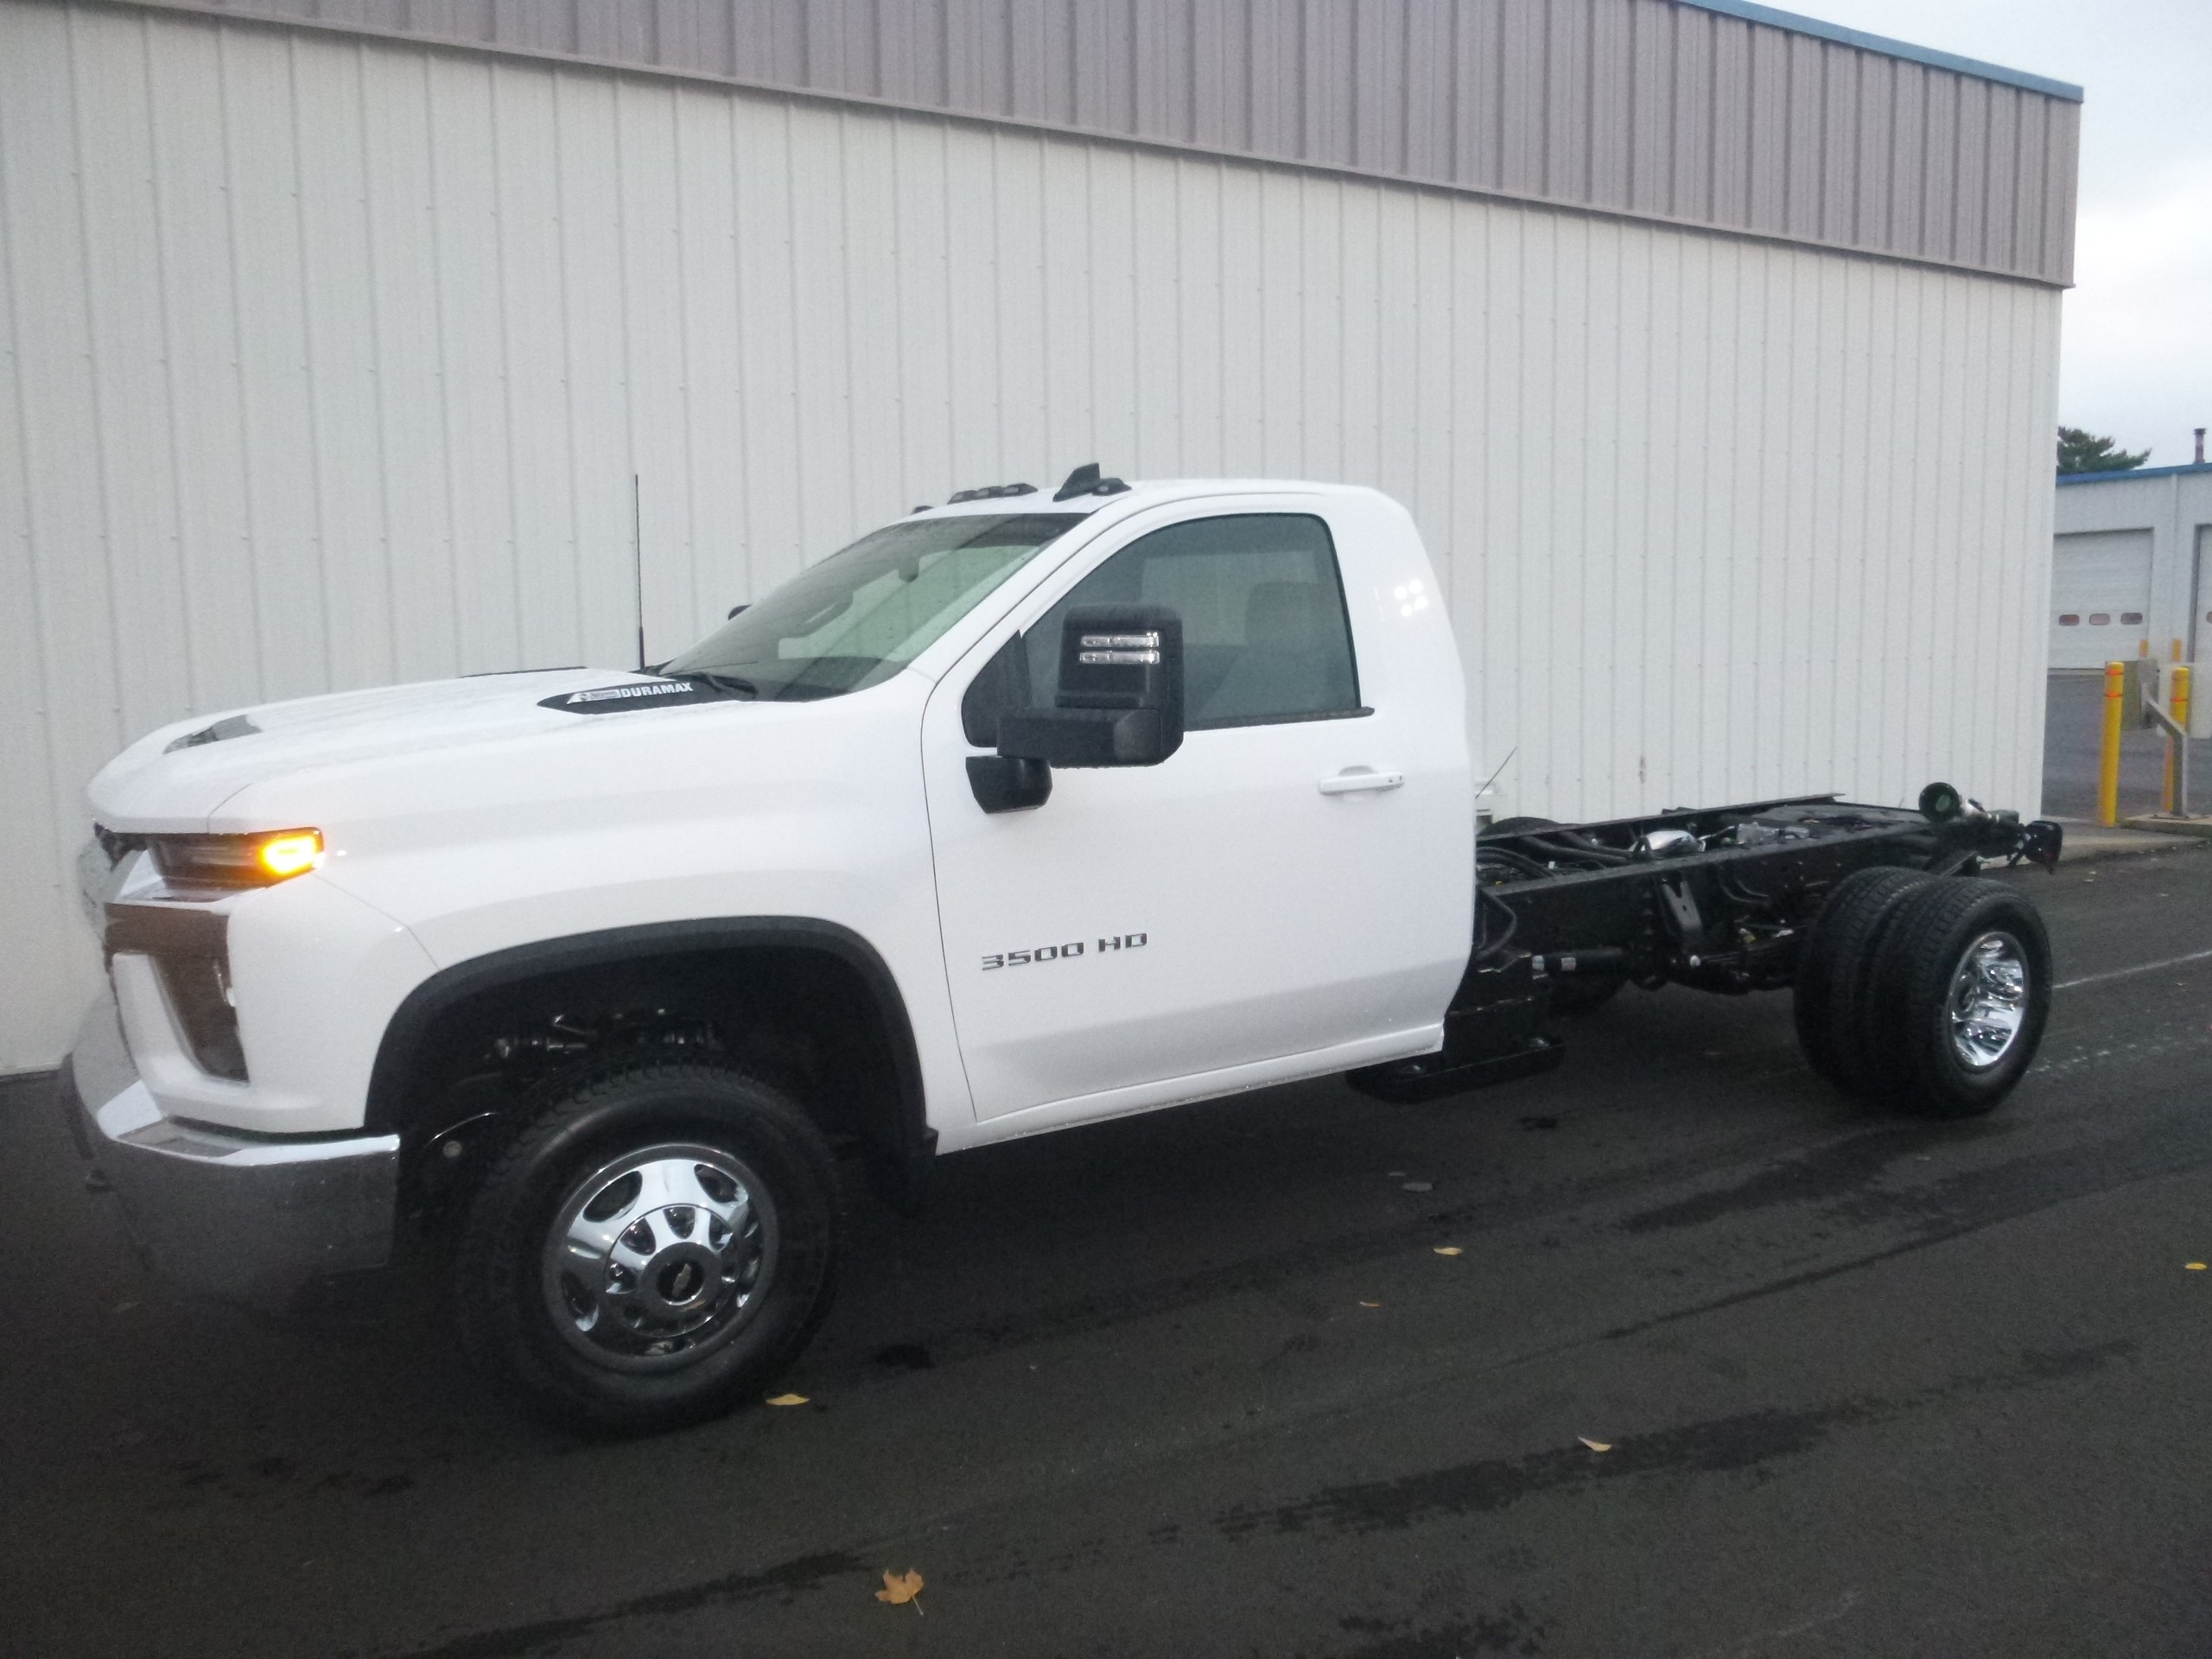 New, 2020, Chevrolet, 3500 HD 2WD Chassis, Cab / Chassis Trucks